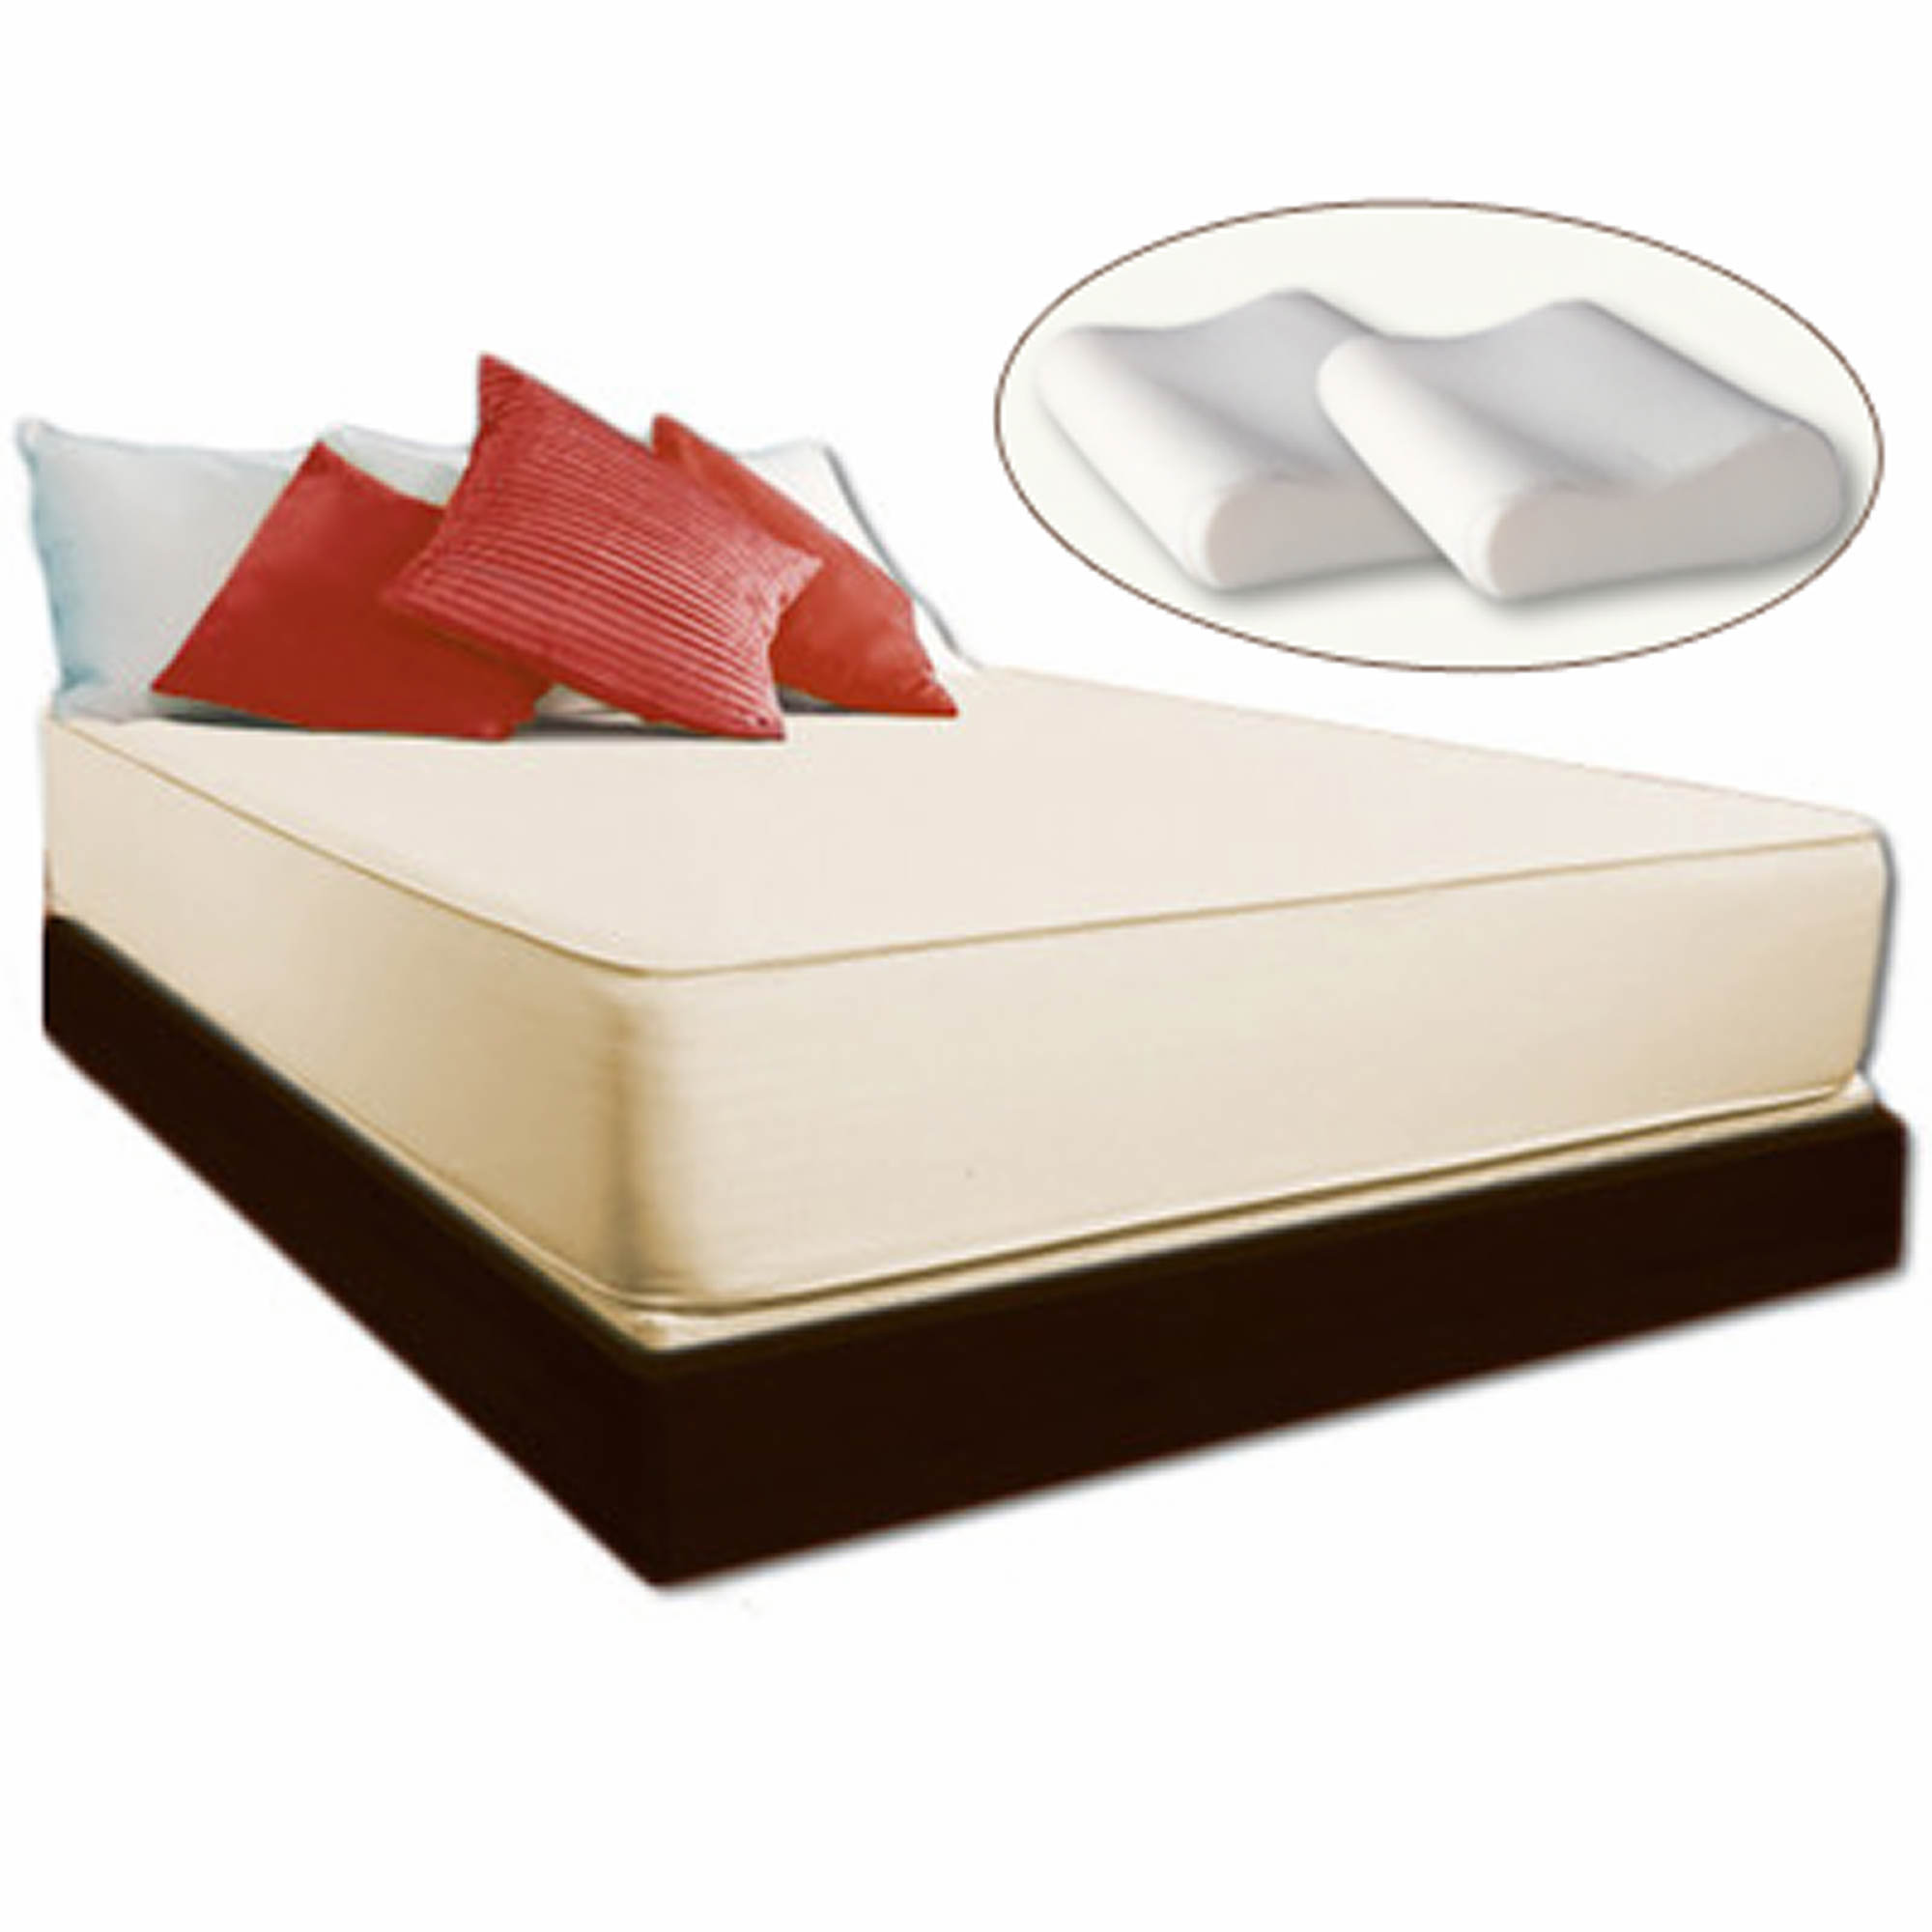 Cradlesoft coolmax twin size 11 memory foam mattress with 2 bonus memory foam pillows bj 39 s Discount foam mattress